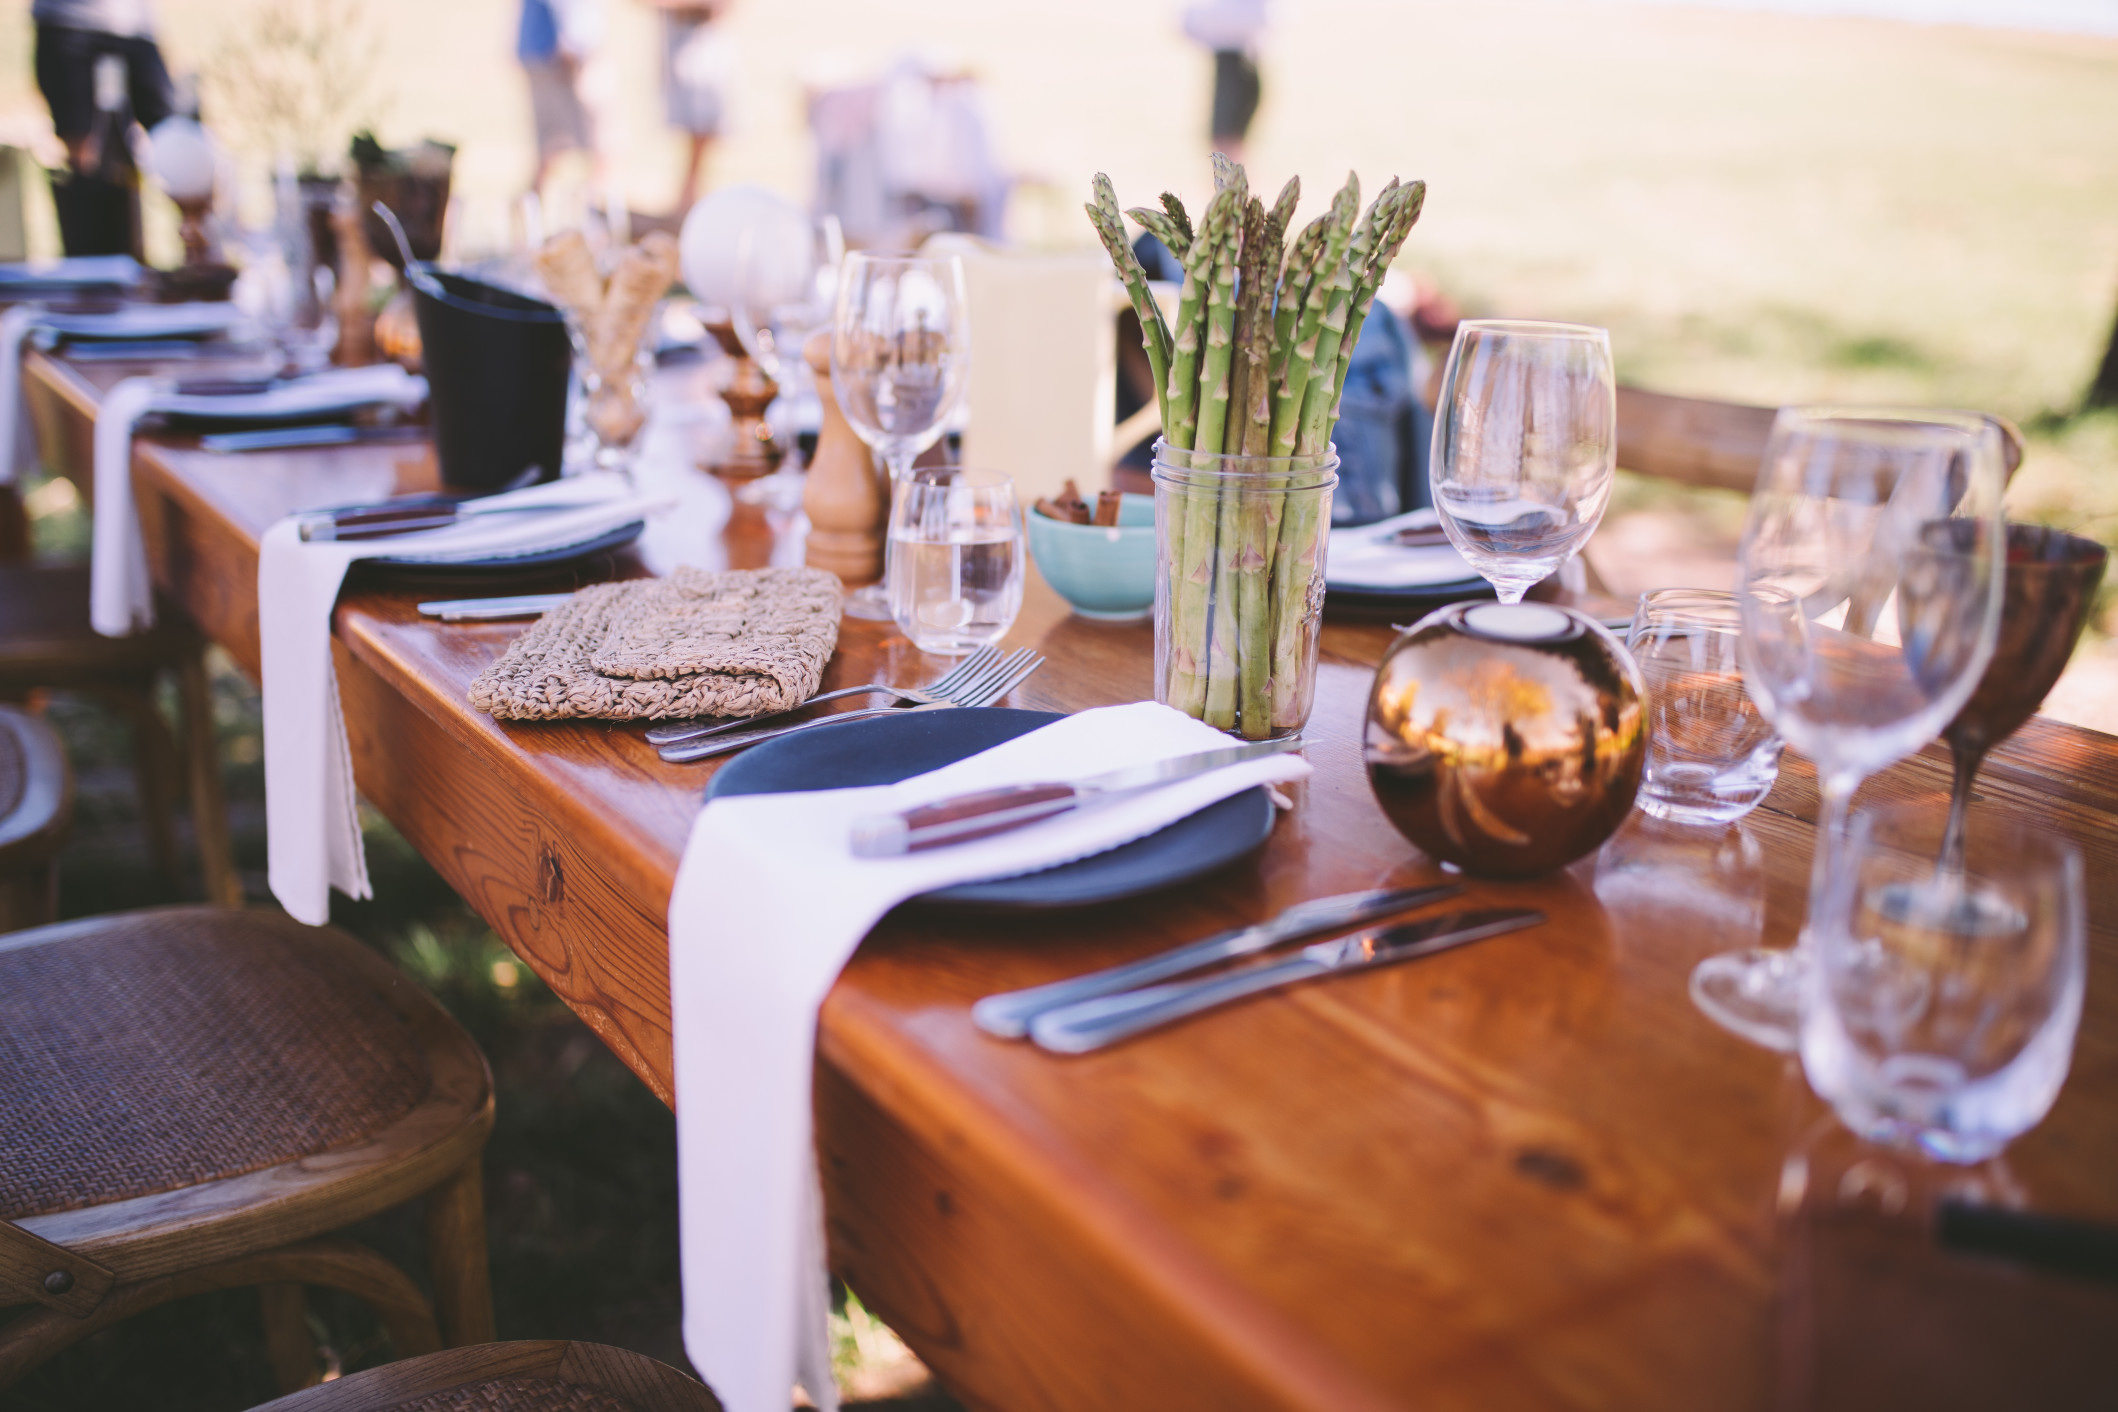 Features to Look for When Choosing a Charlotte Wedding Venue